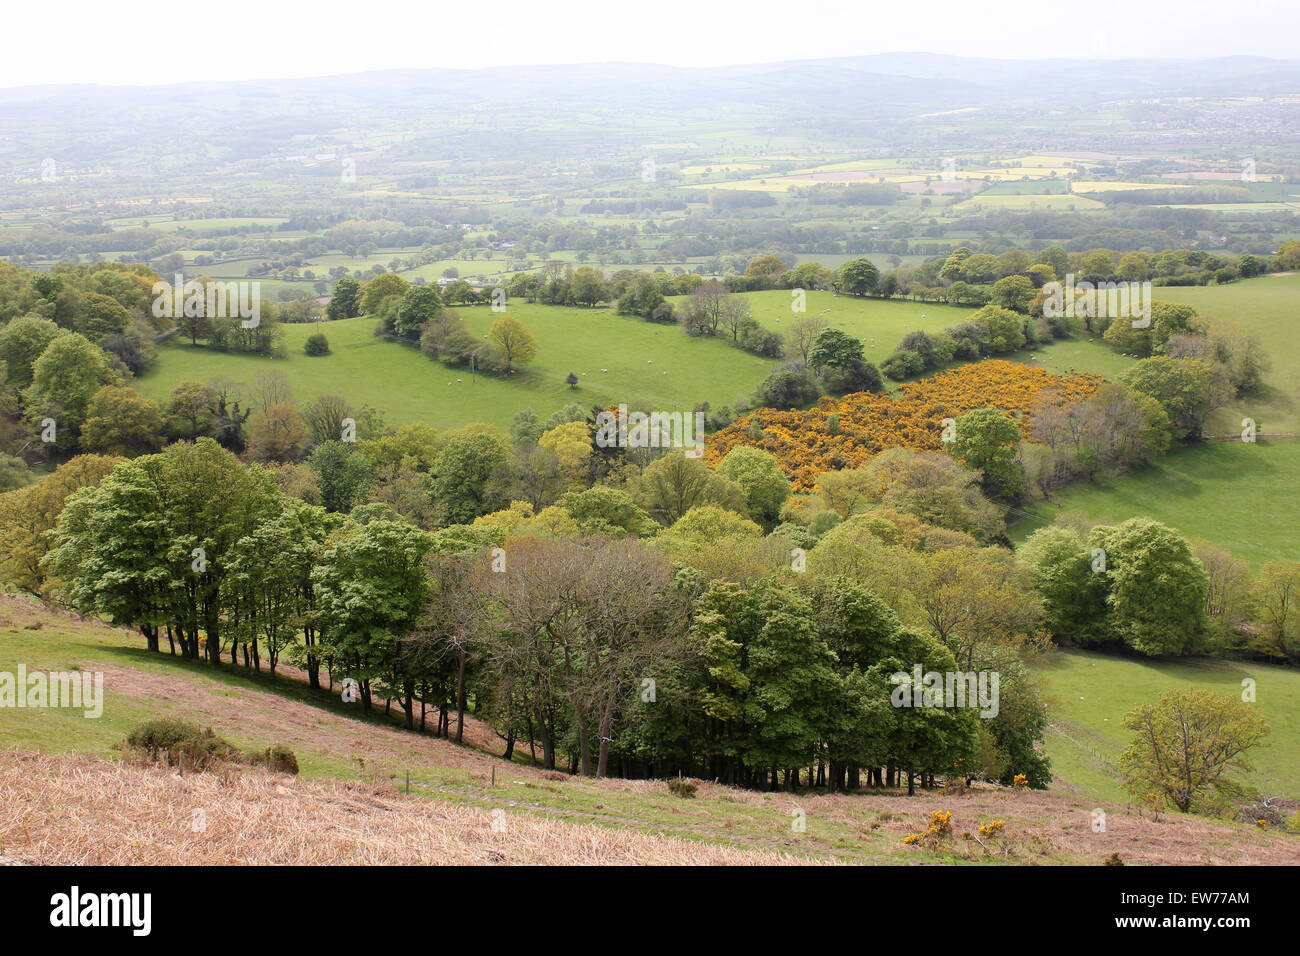 Vale Of Clwyd From The Clywdian Range, Denbighshire, Wales - Stock Image